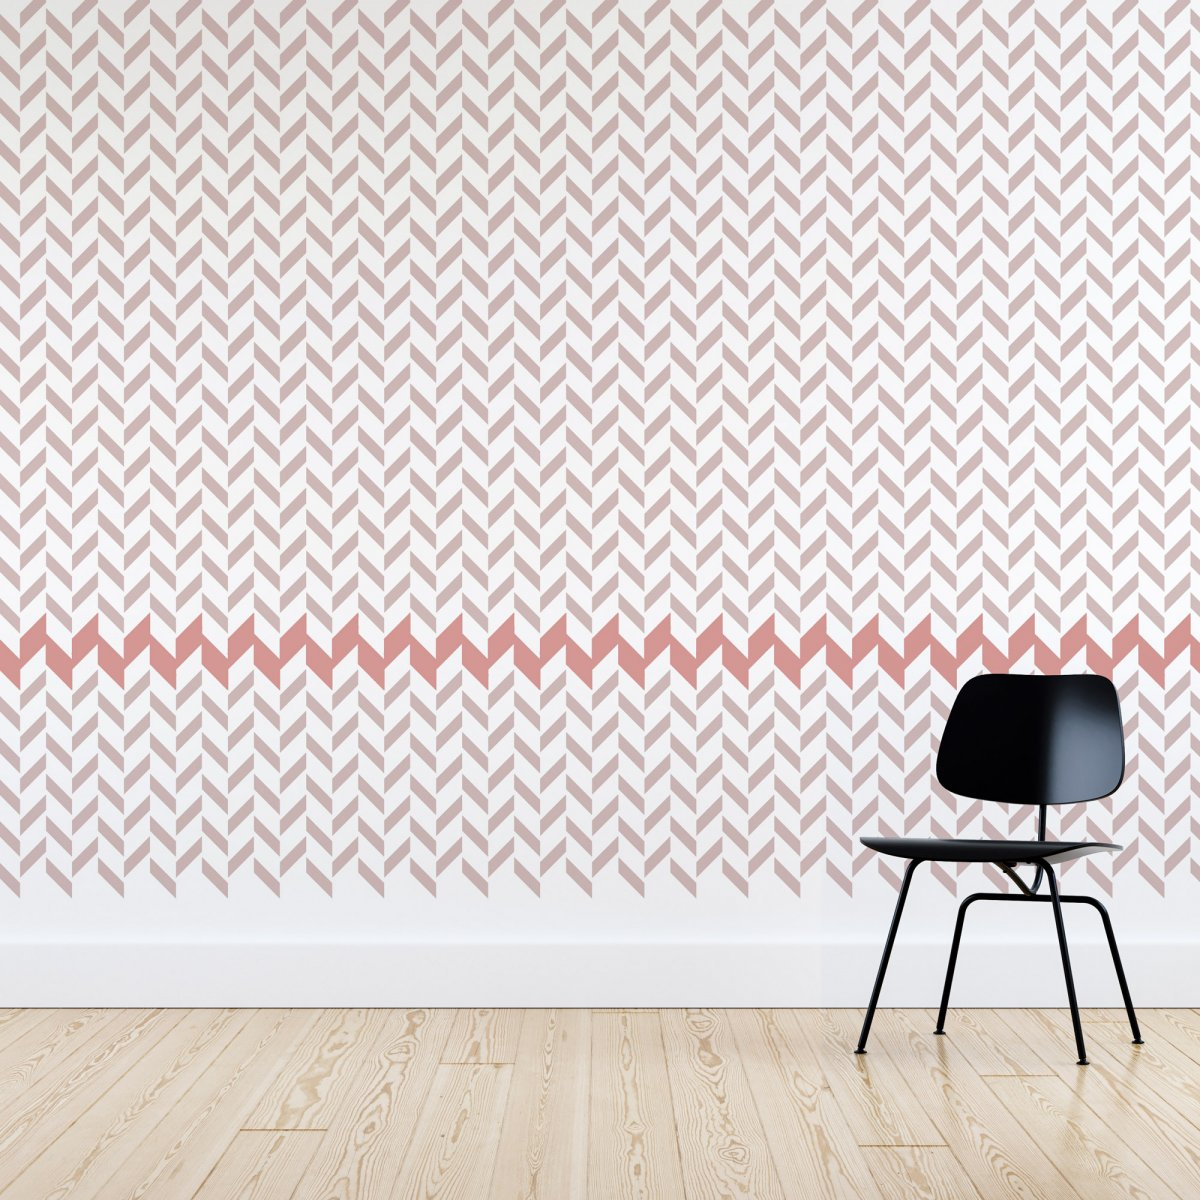 CHEVRON I / Reusable Allover Large Wall Stencils for Painting